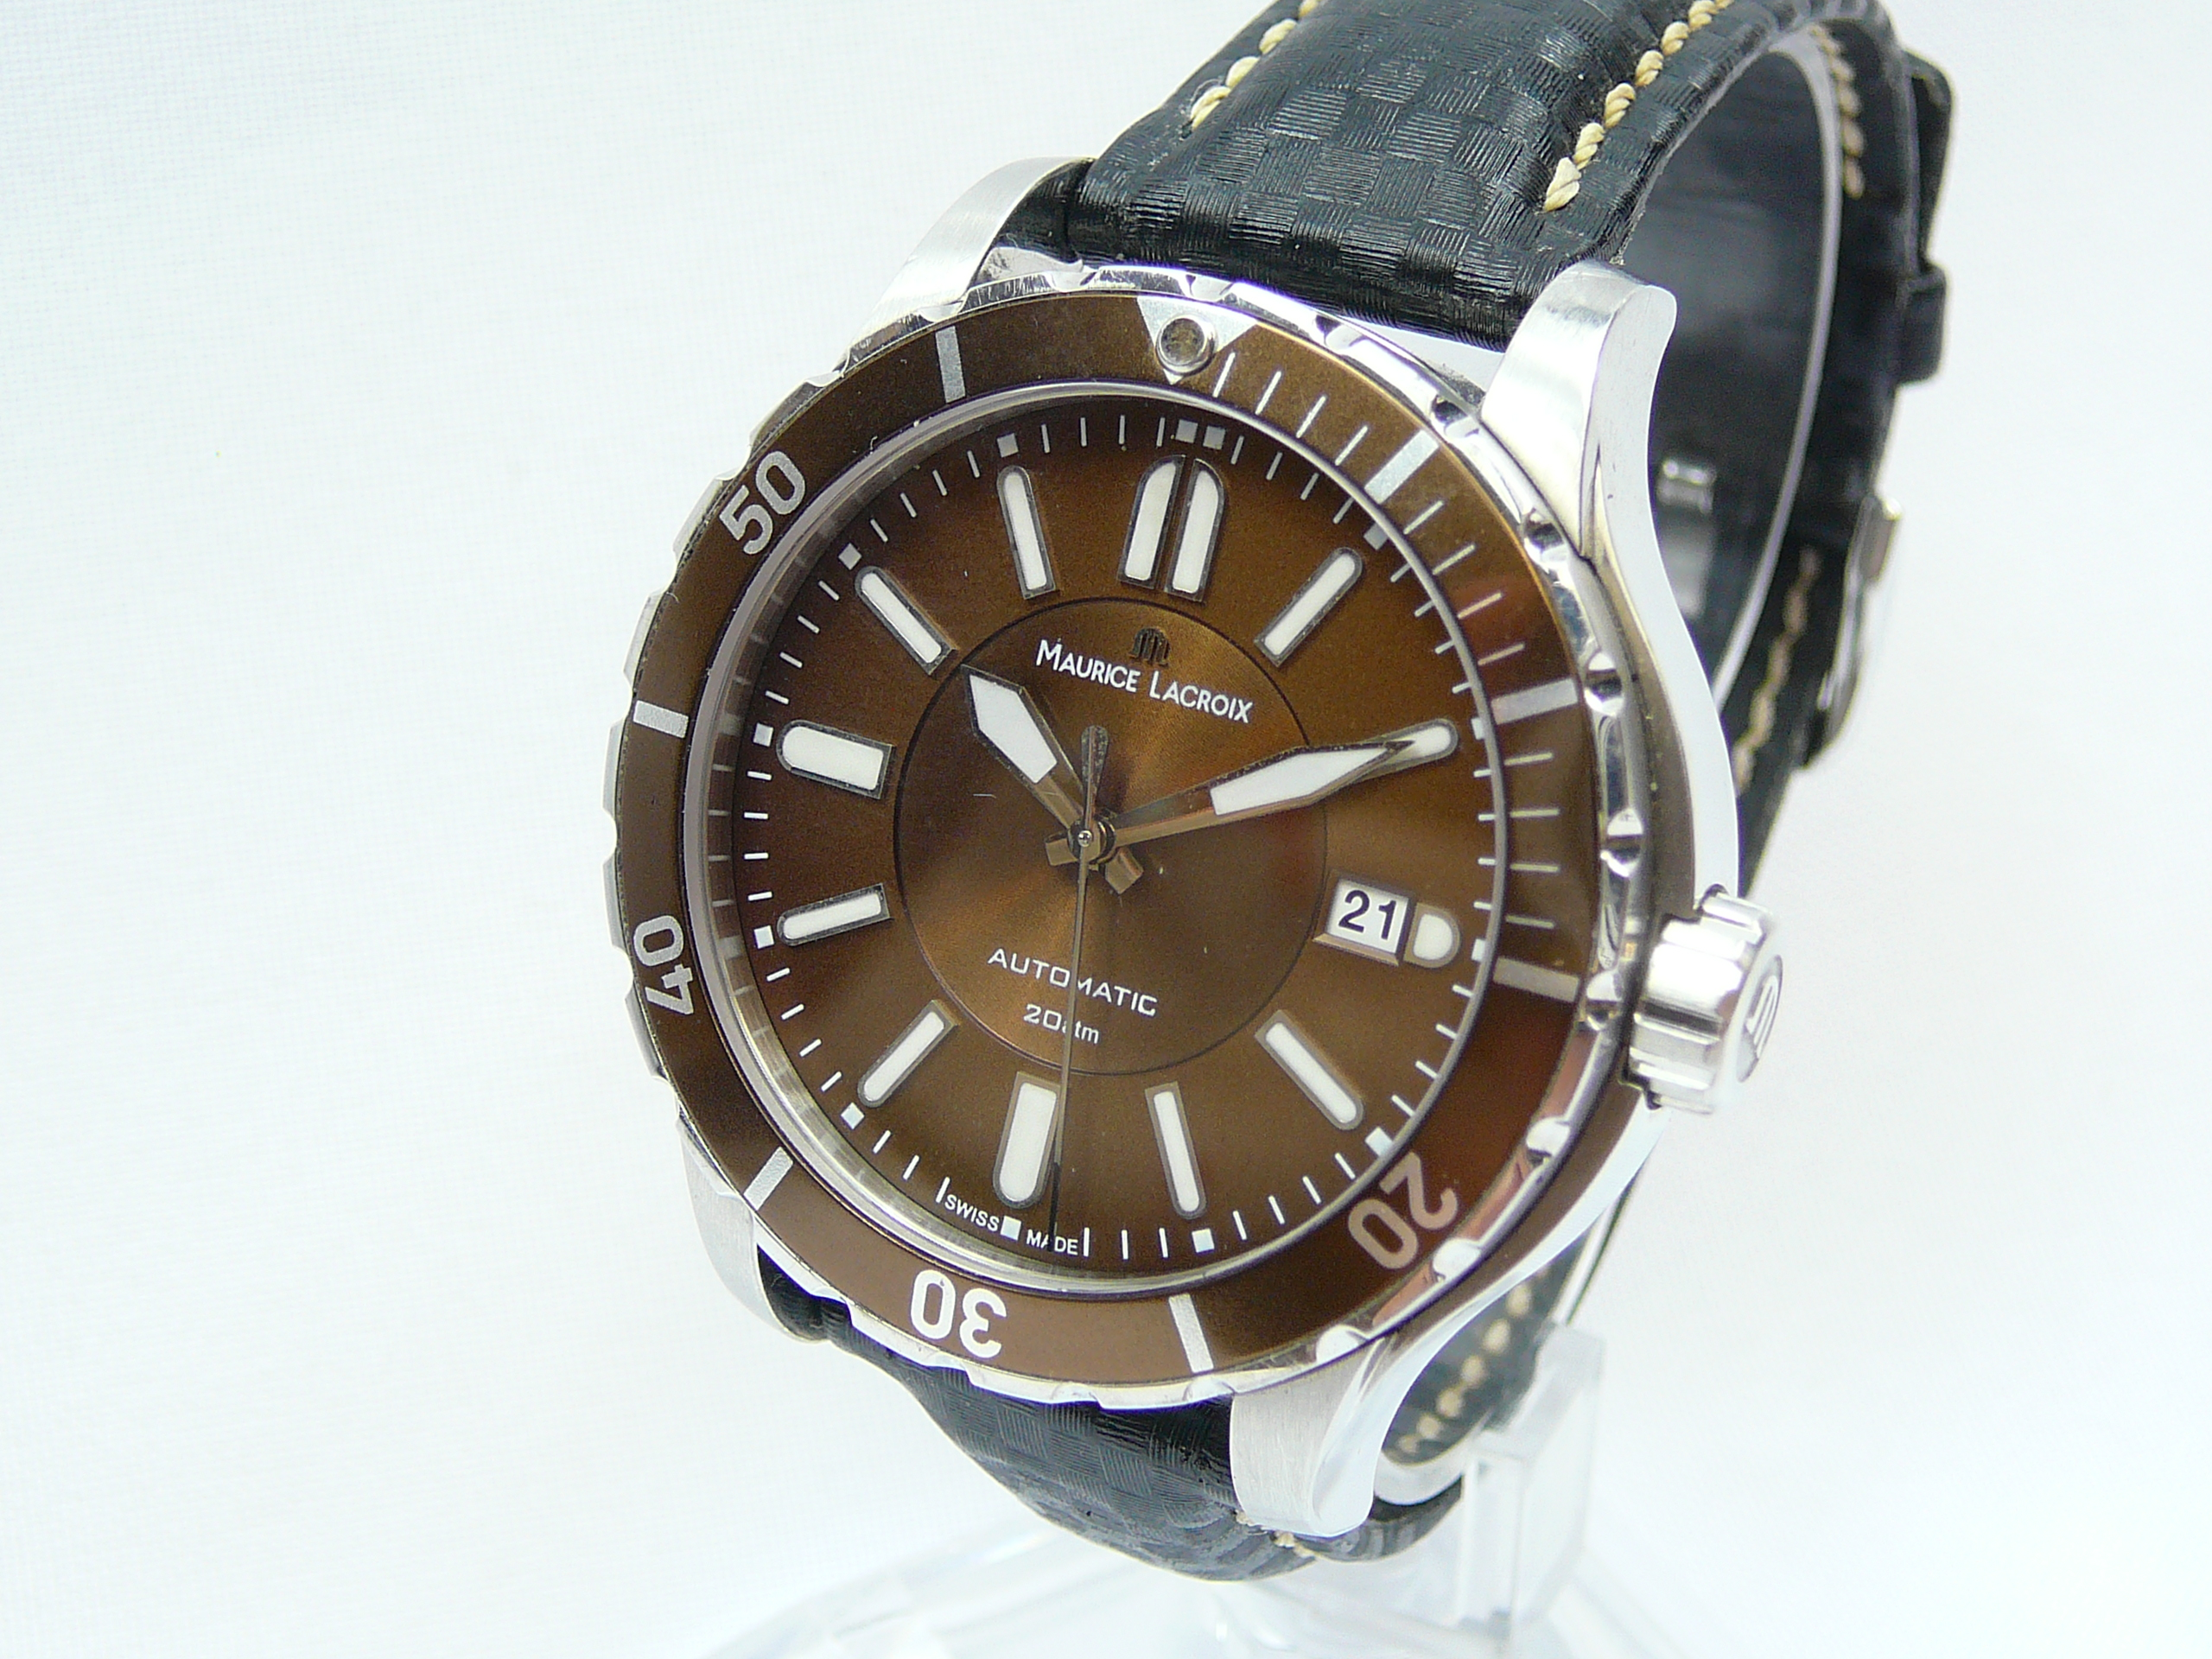 Gents Maurice Lacroix Wrist Watch - Image 2 of 3